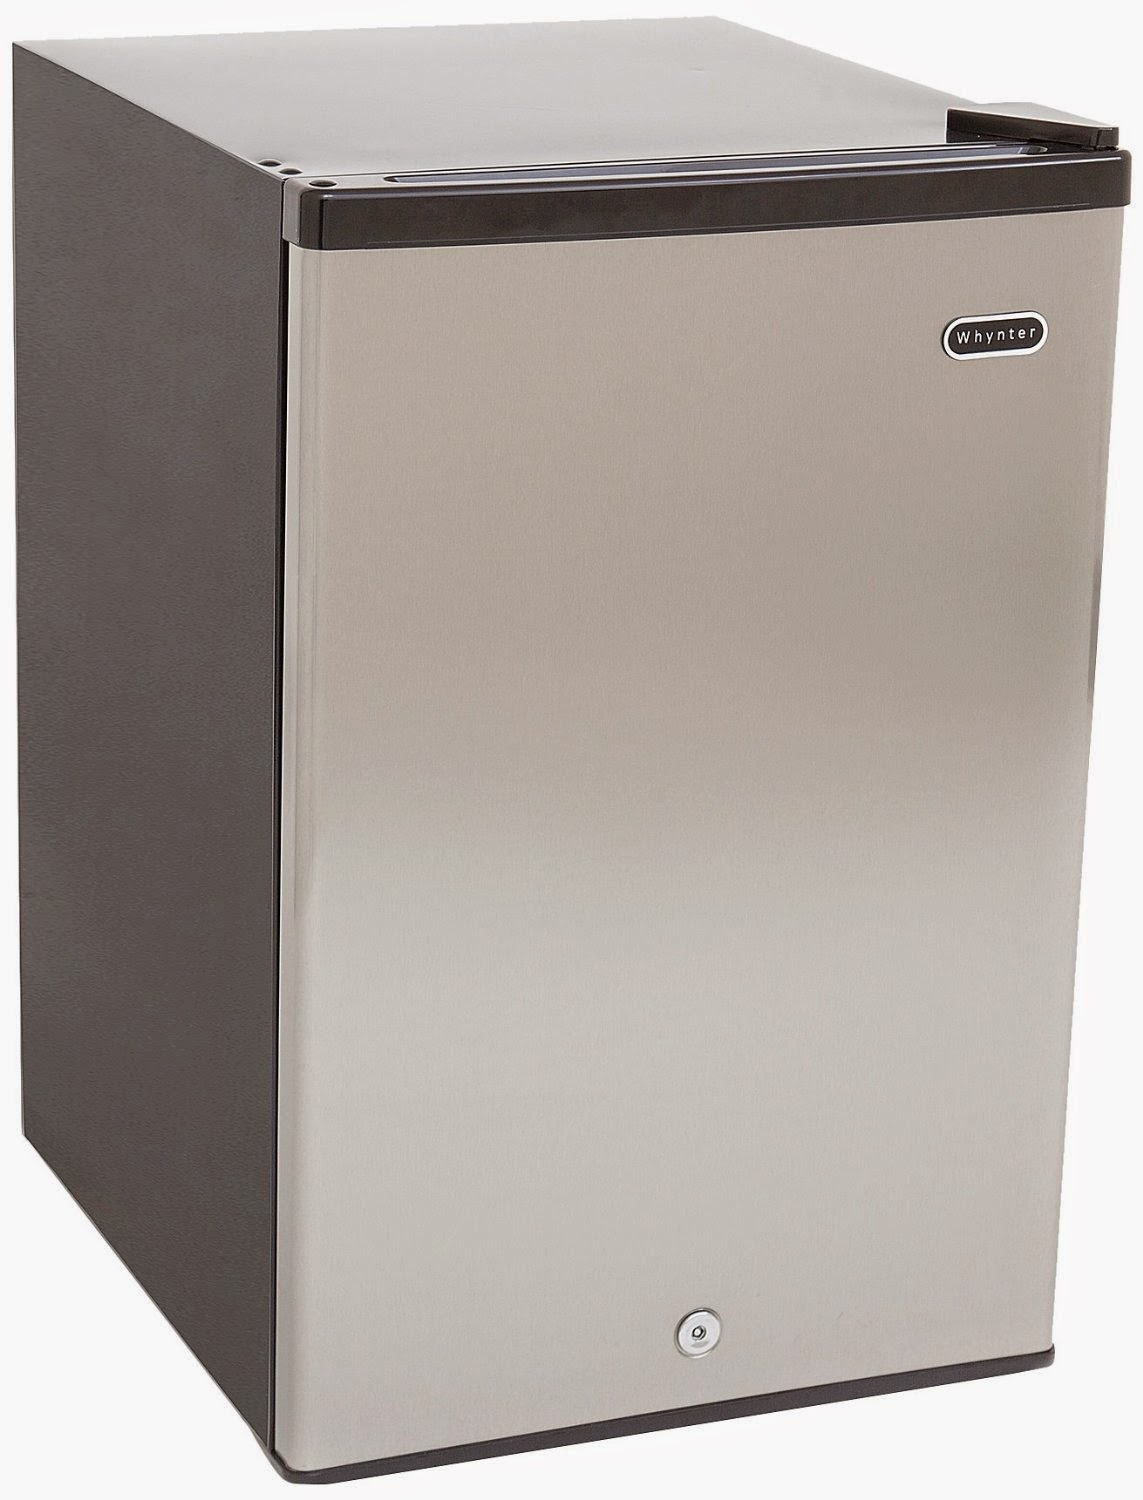 Whynter 21 Cubic Feet Small Deep Freezers For Sale